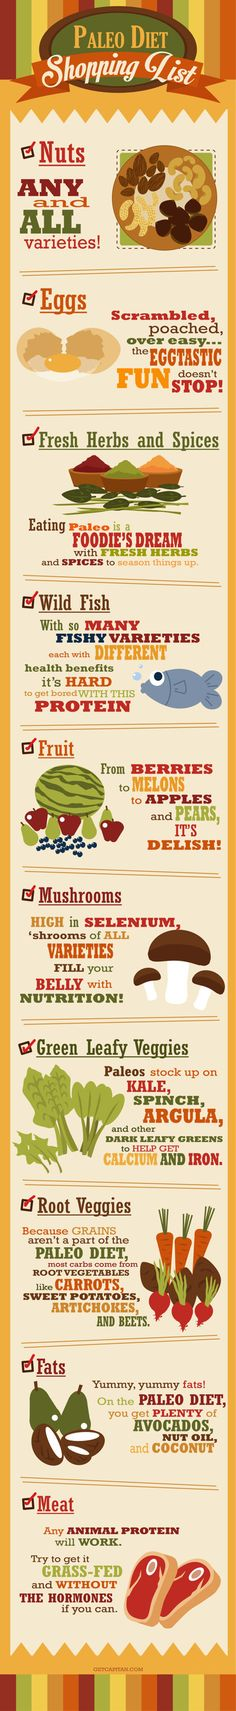 http://www.getcapitan.com/list/paleo-diet-shopping-list A Paleo diet list should be created prior to starting your new diet. You will be amazed of the results.